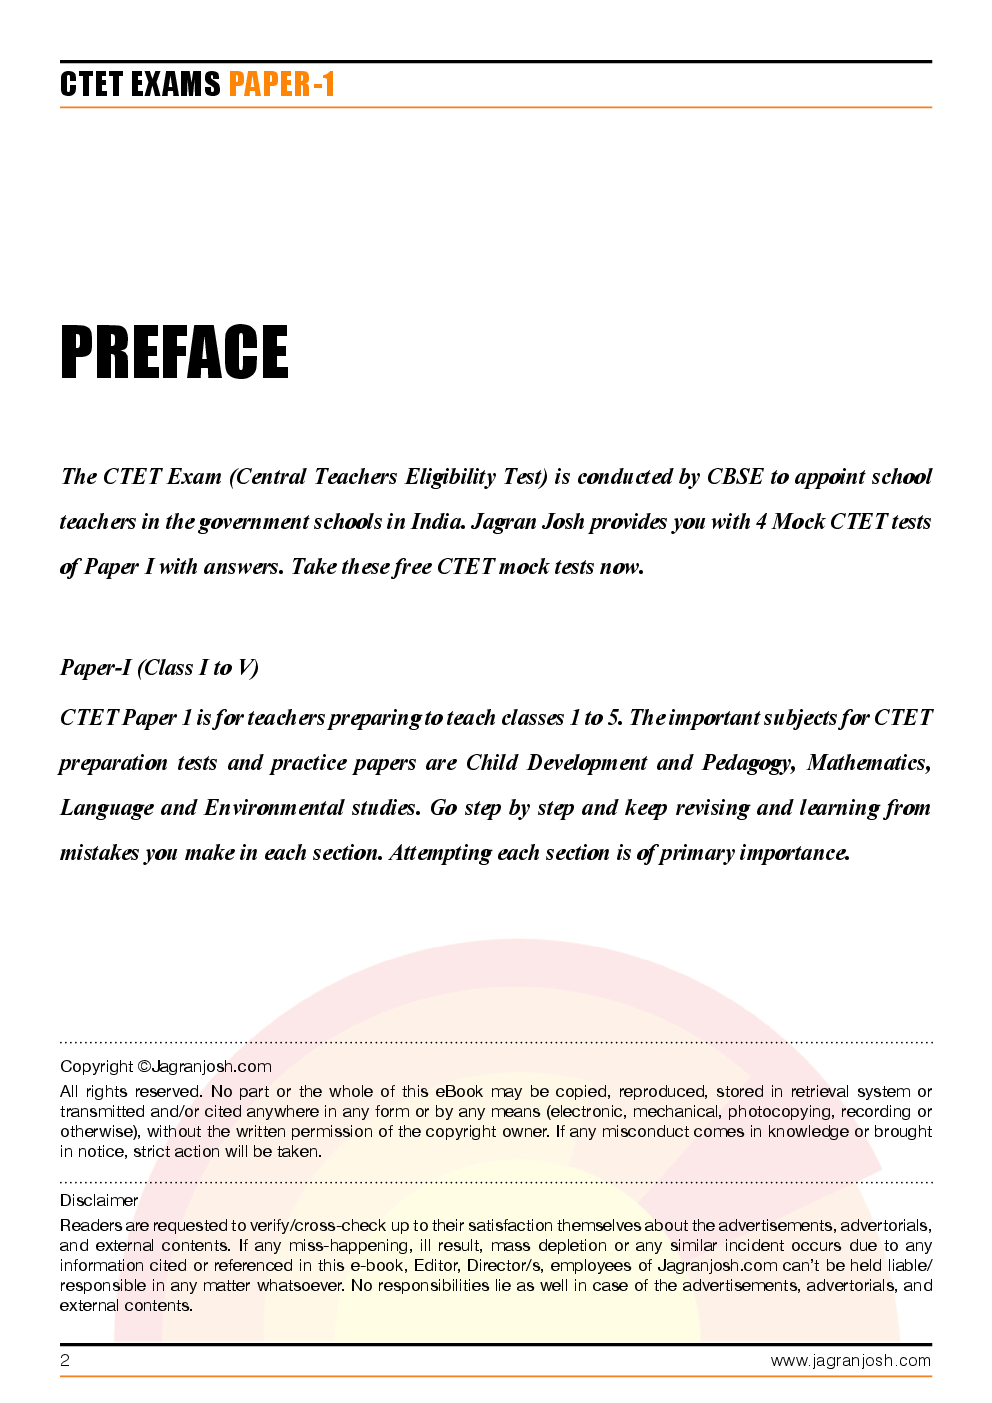 CTET Paper-1 Solved Questions and Answers - Page 2